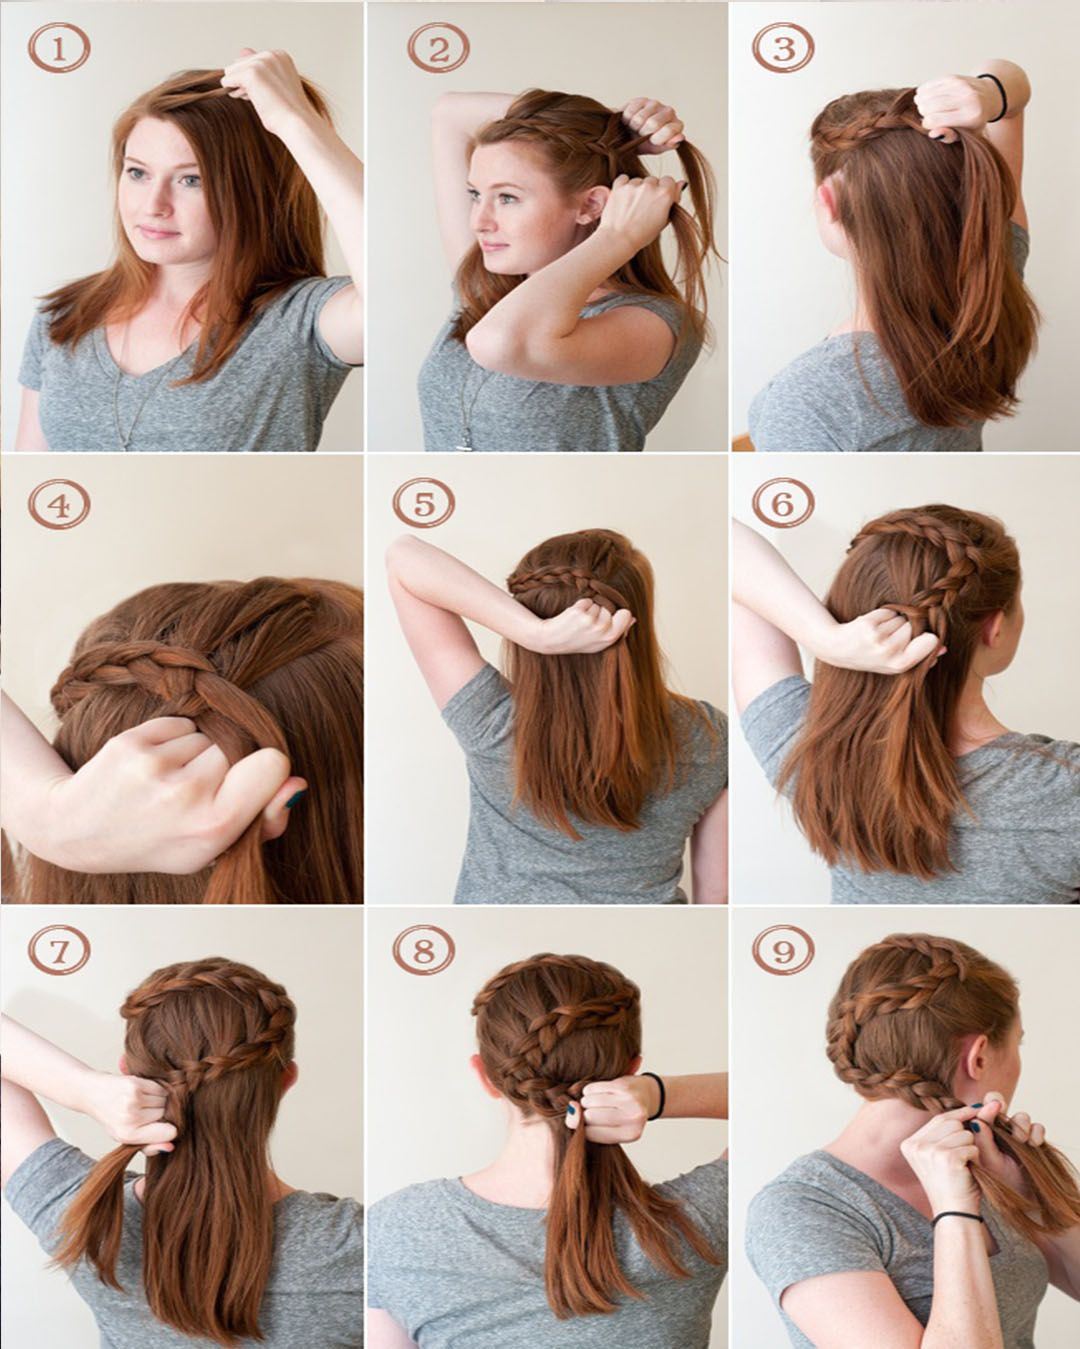 Hairstyles With Easy Step By Step Braids And Stylish Tumblr Fancy Hairstyles Pretty Hairstyles Braided Hairstyles Tutorials